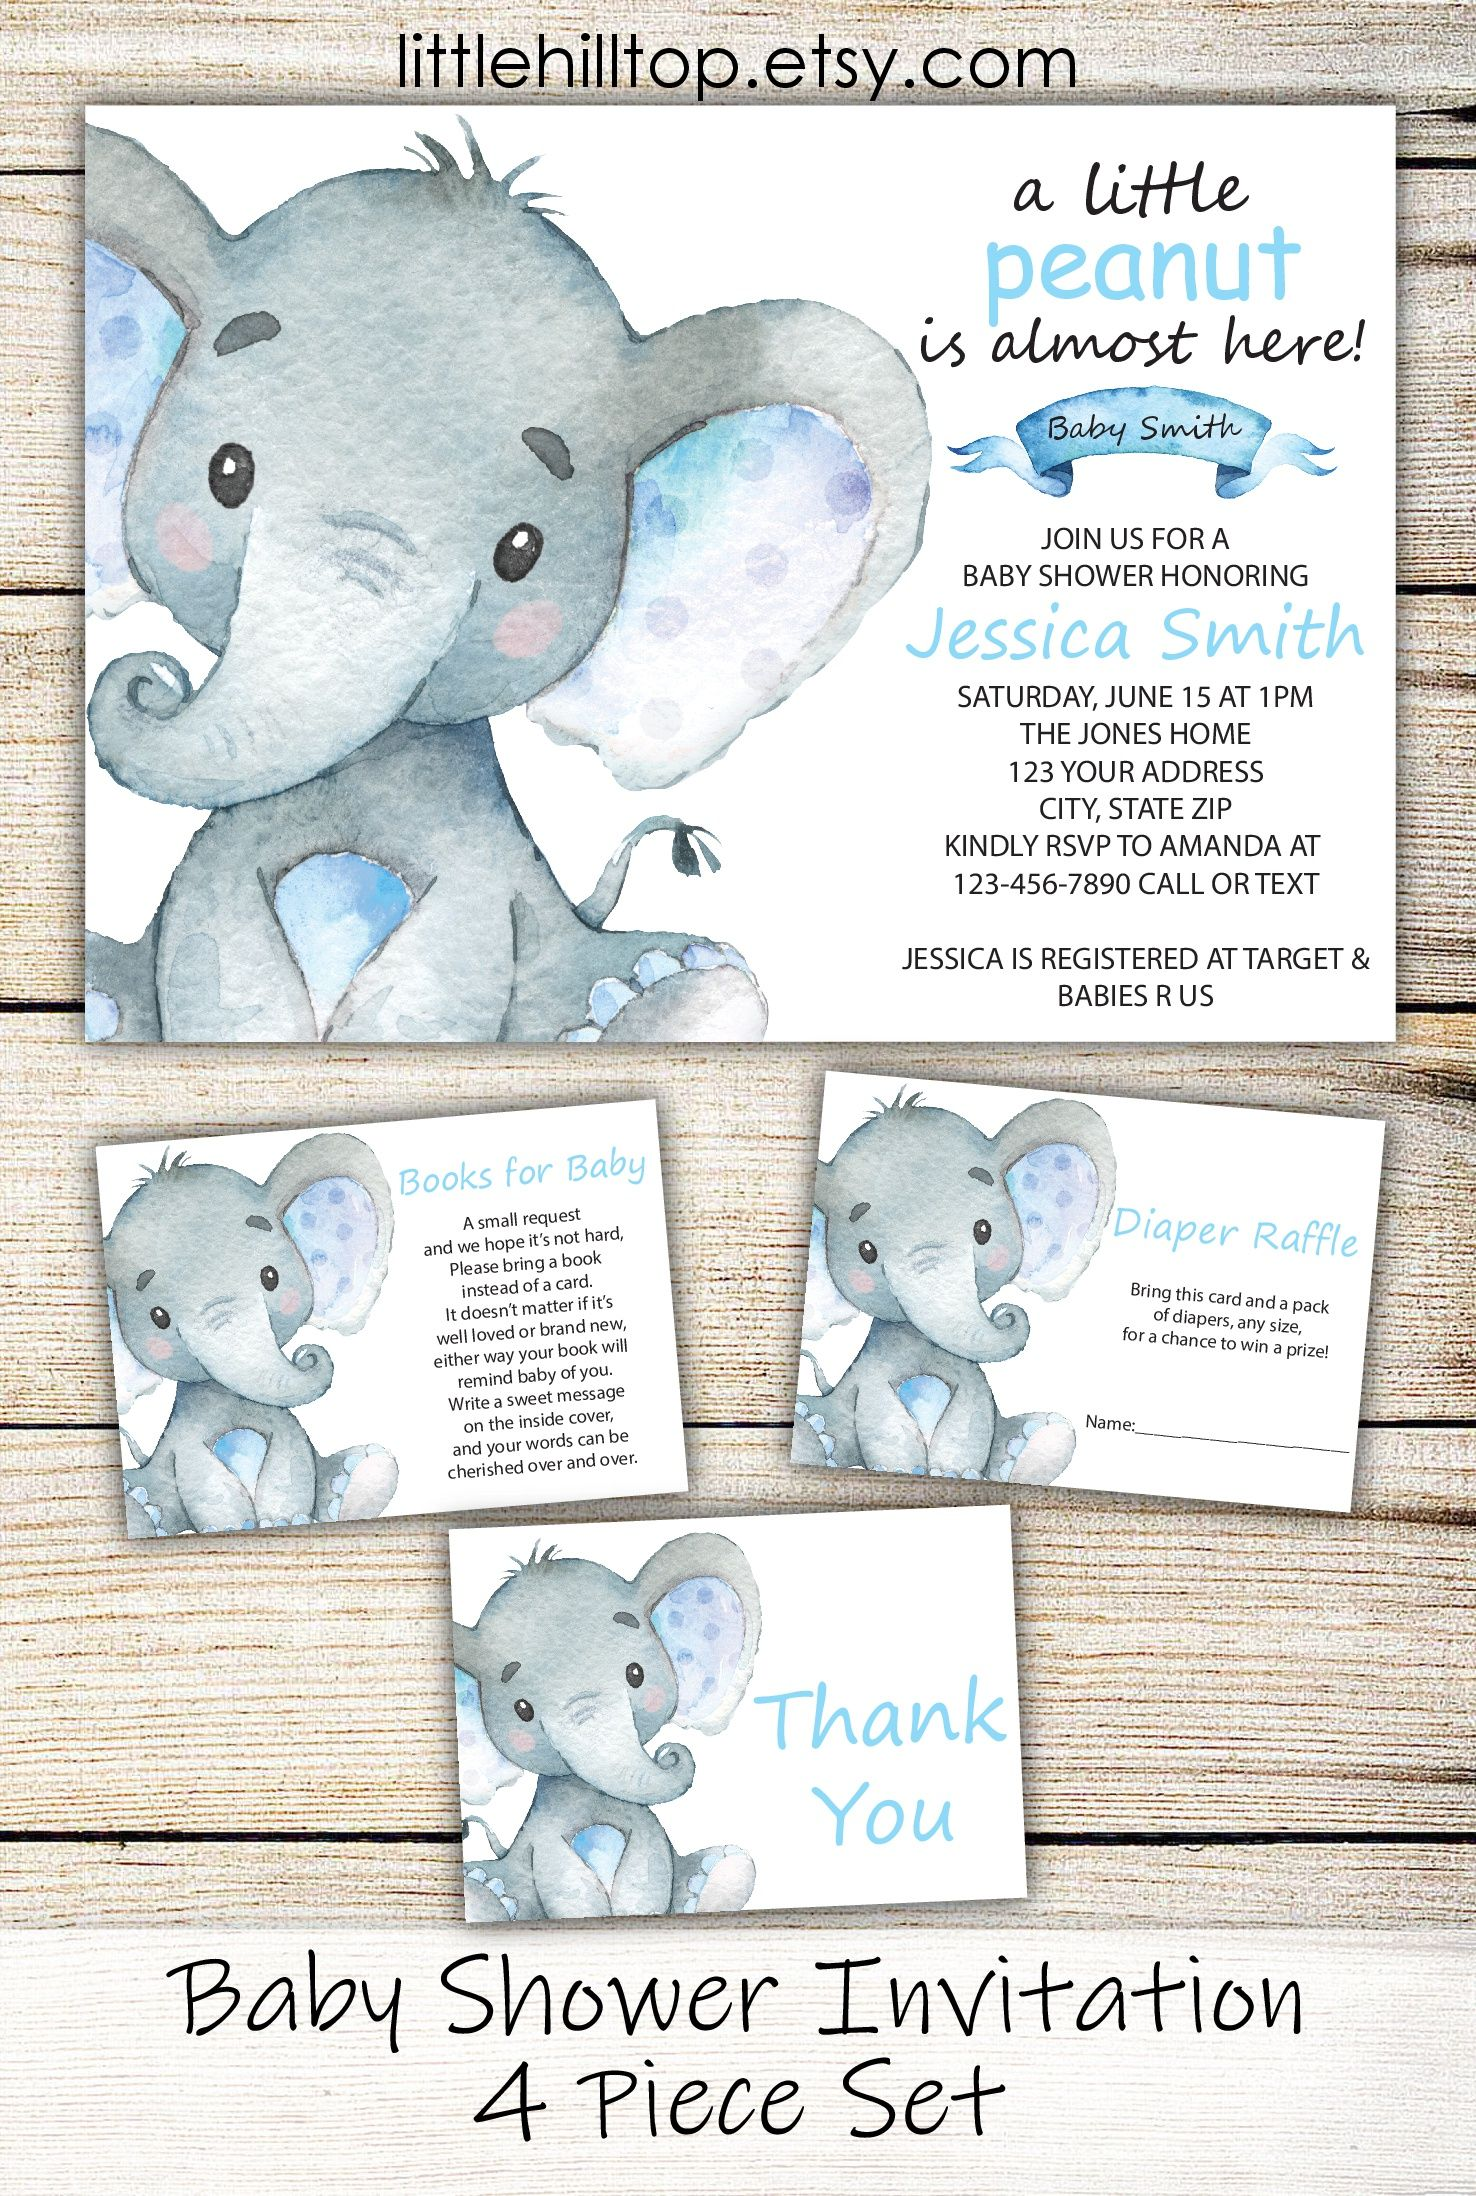 Adorable elephant invitation featuring baby elephant and